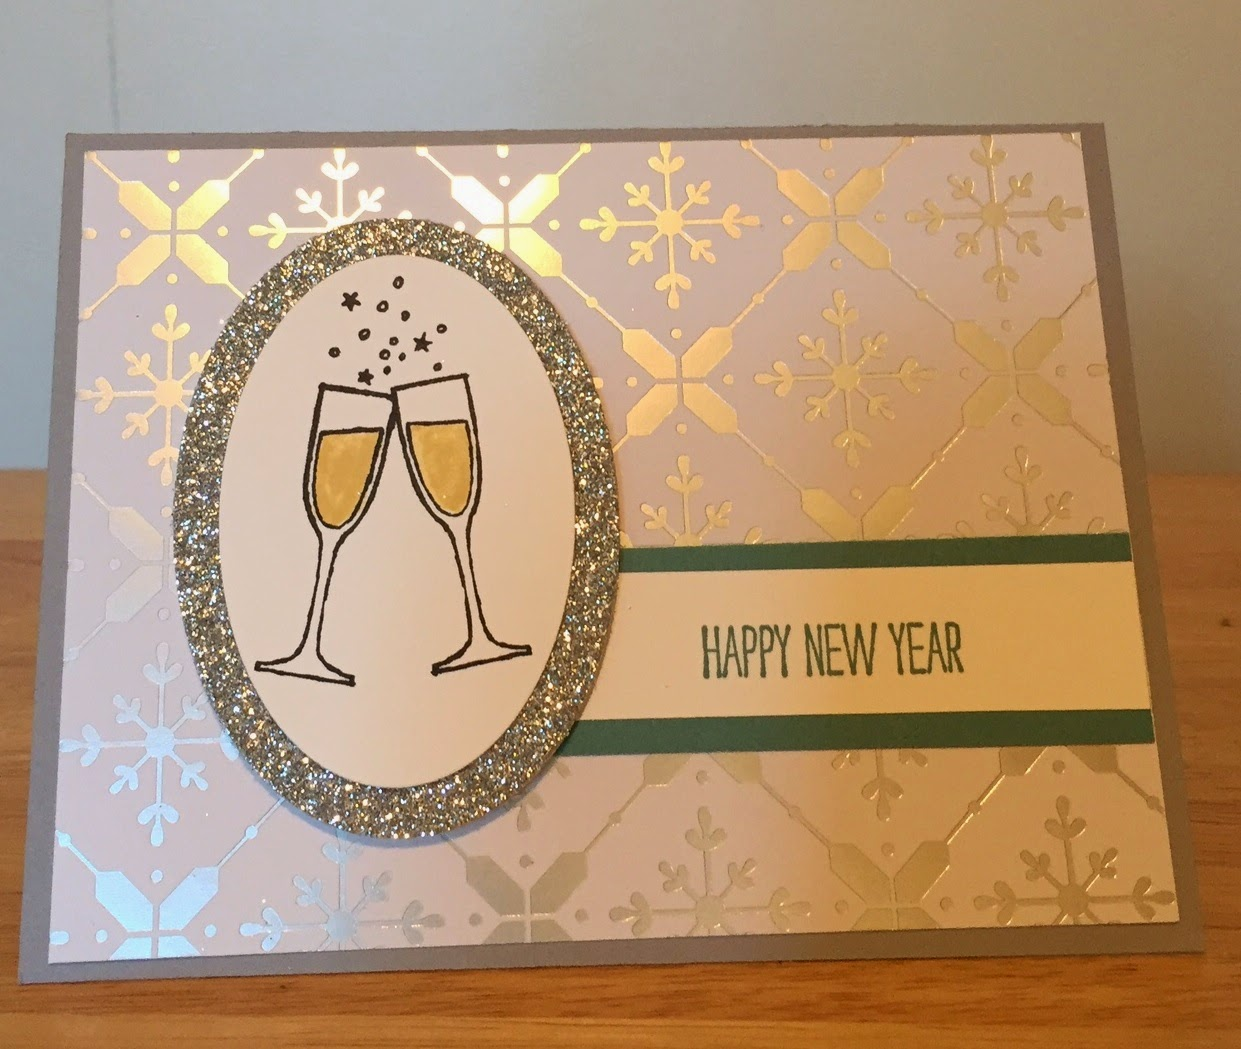 http://www.stampinup.net/blog/2121881/entry/happy_new_year?anchor=comments